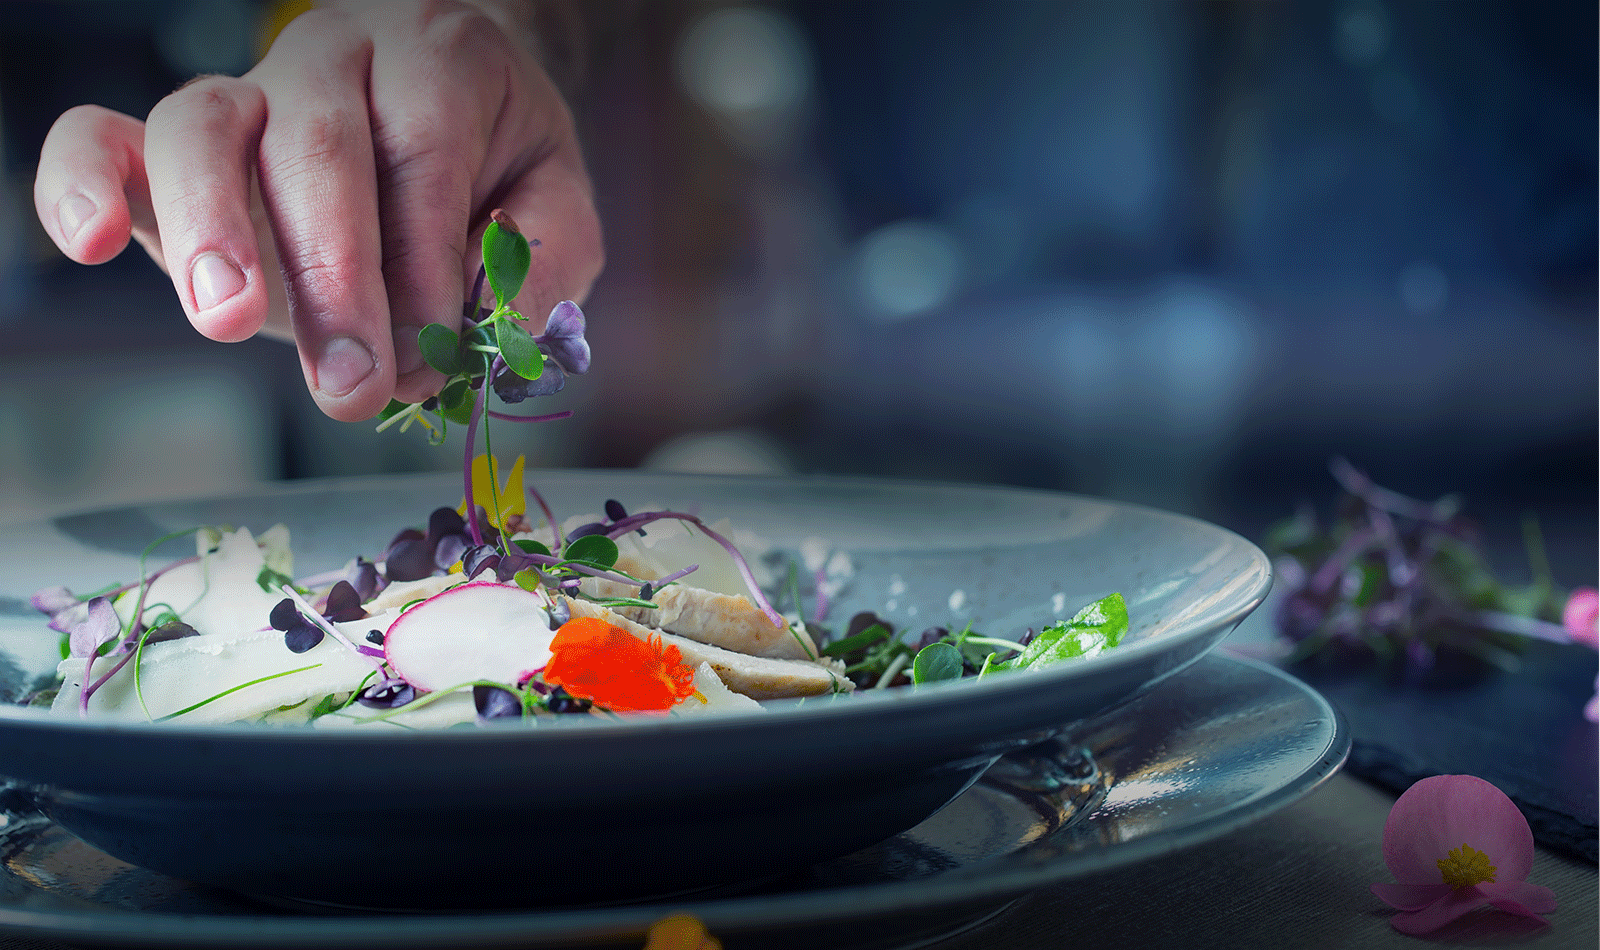 Chef hand garnishing a dish